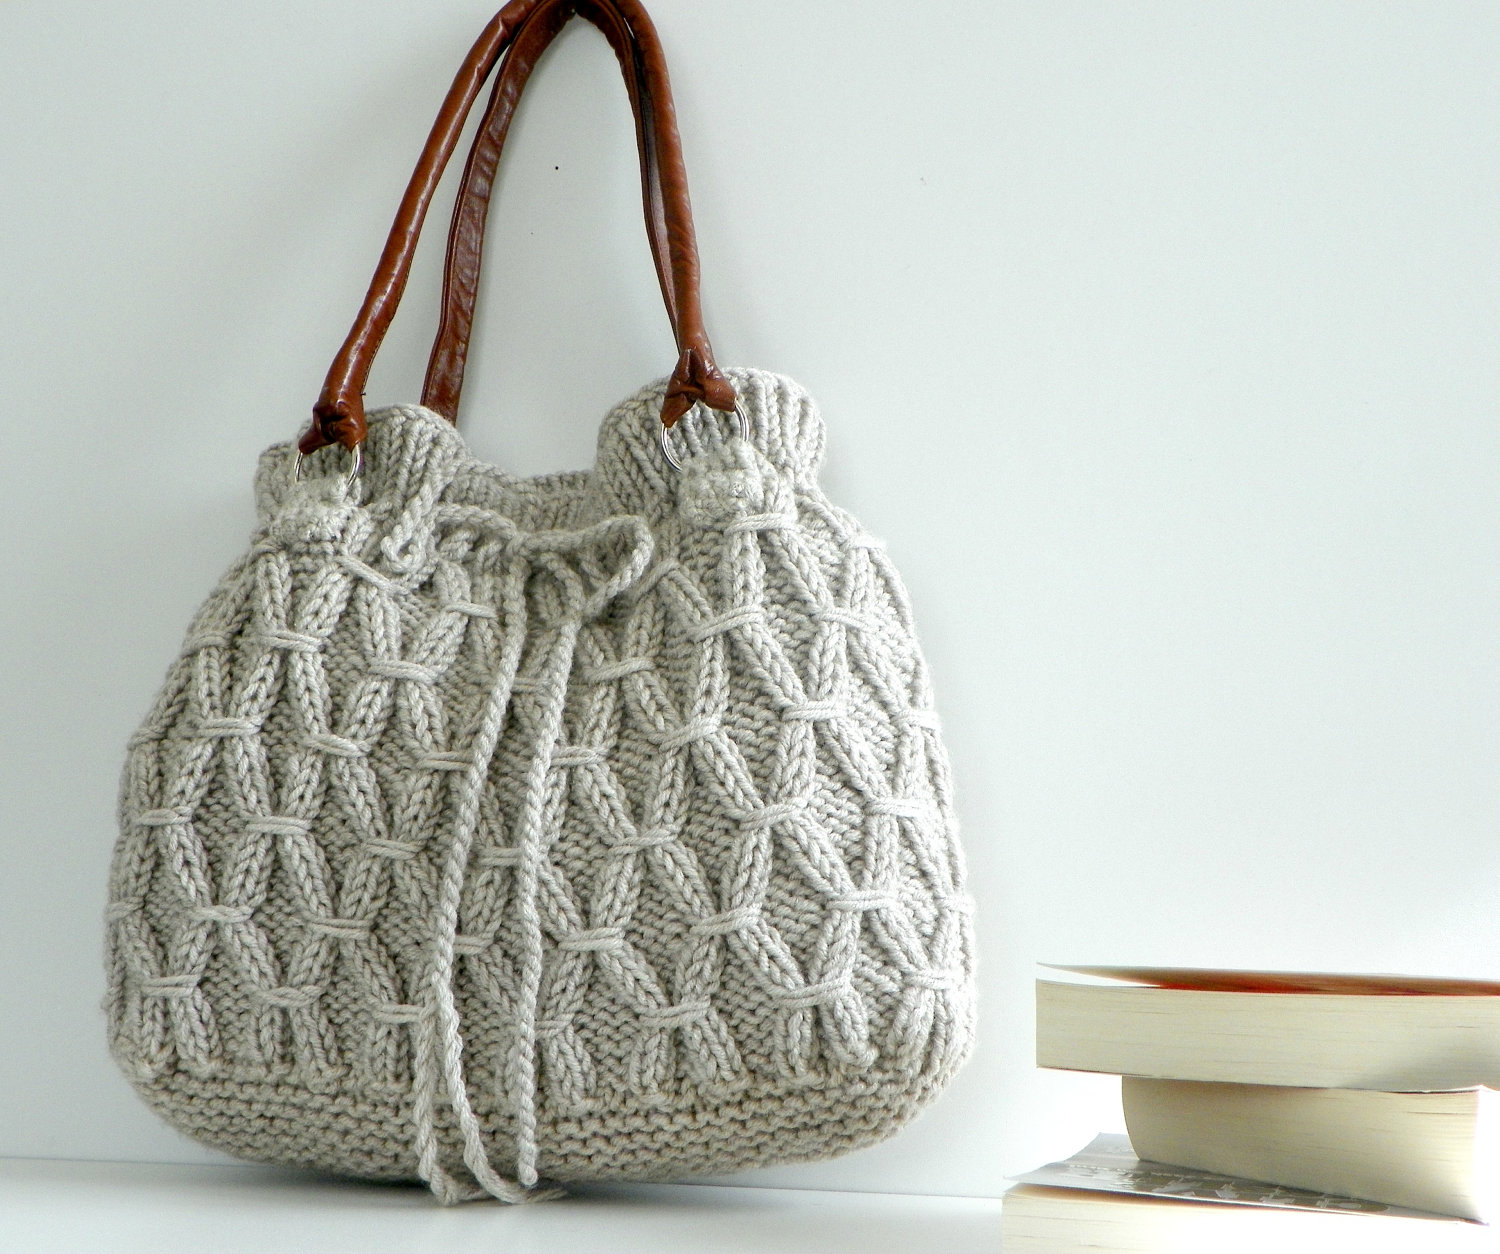 Knit handbag handbag reviews 2017 how to make knitted bags knitting crochet dy craft free knit handbag bankloansurffo Gallery